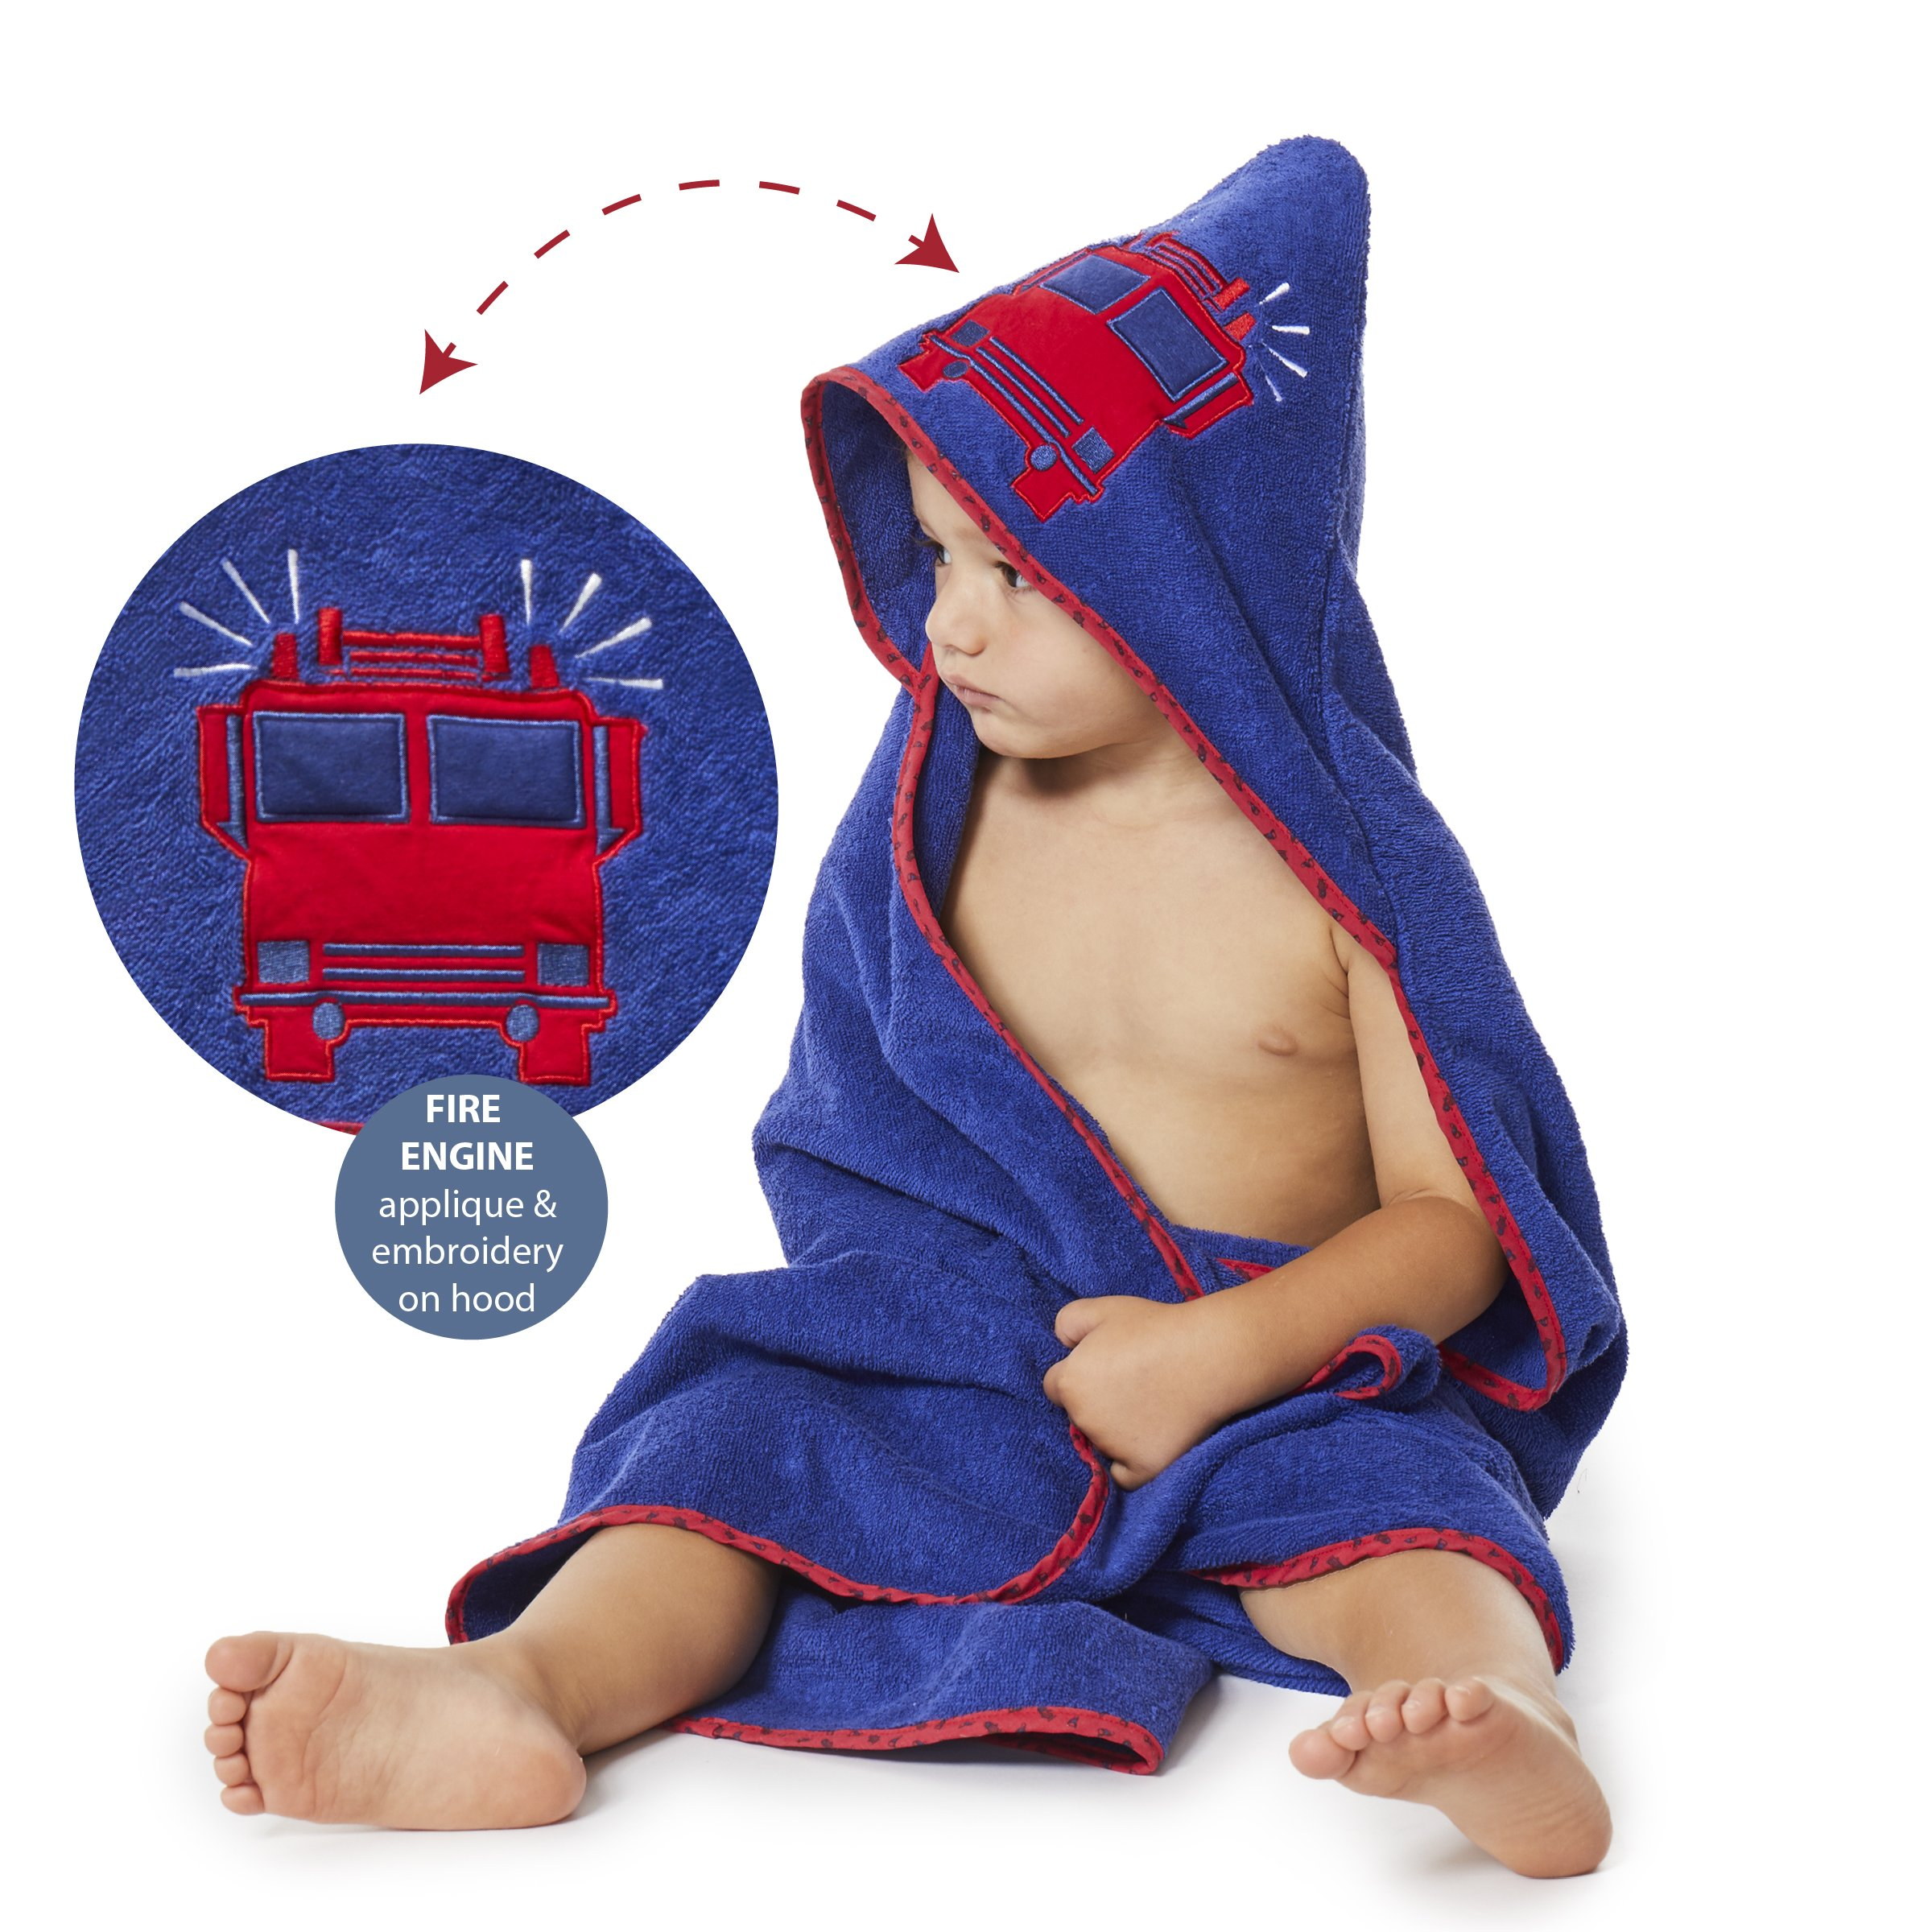 Bluenido Boys Hooded Towel FIRE TRUCK Fire Engine 35'' x 35'' for Infants, Toddlers and Kids, Great for Gifts. Perfect for Bath, Pool and Beach. 100% Cotton